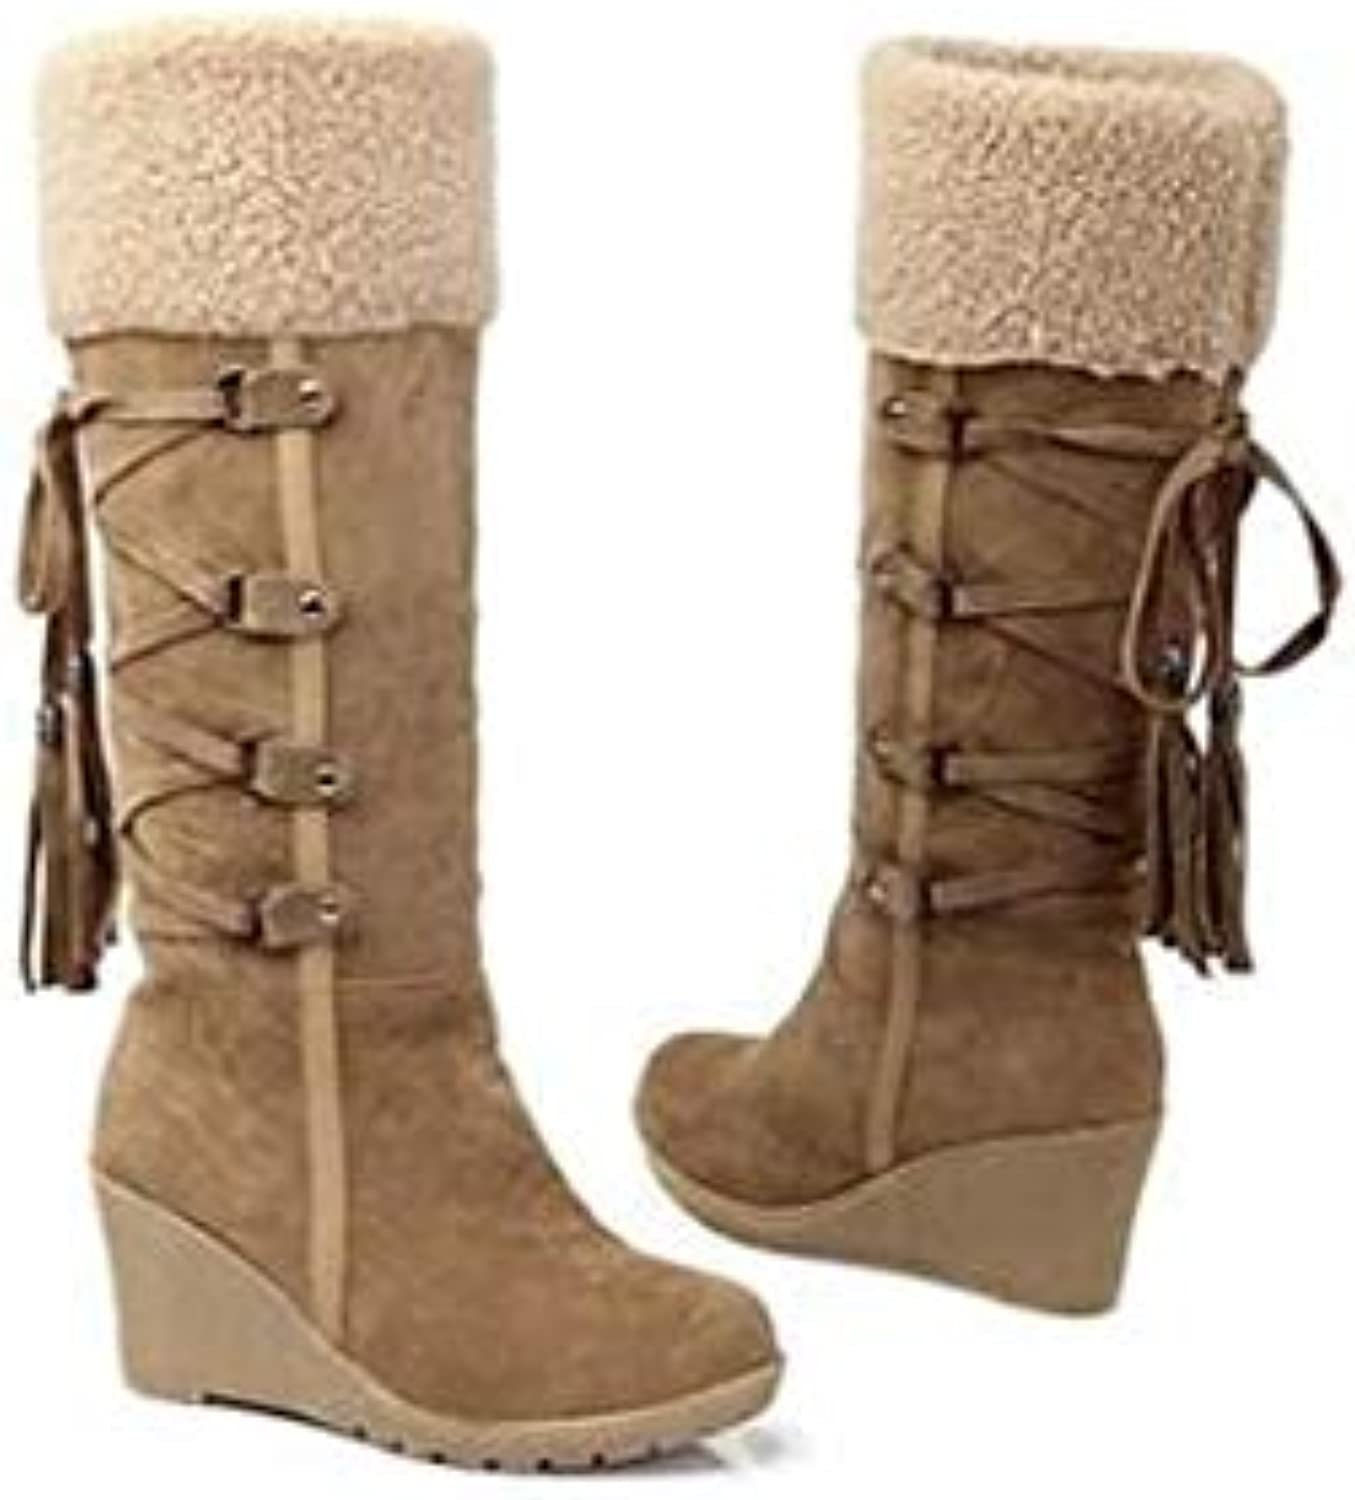 Top Shishang Winter Scrub Lace Fringe High Snow Boots Wedges Faux Fur Lined Martin Boots Women